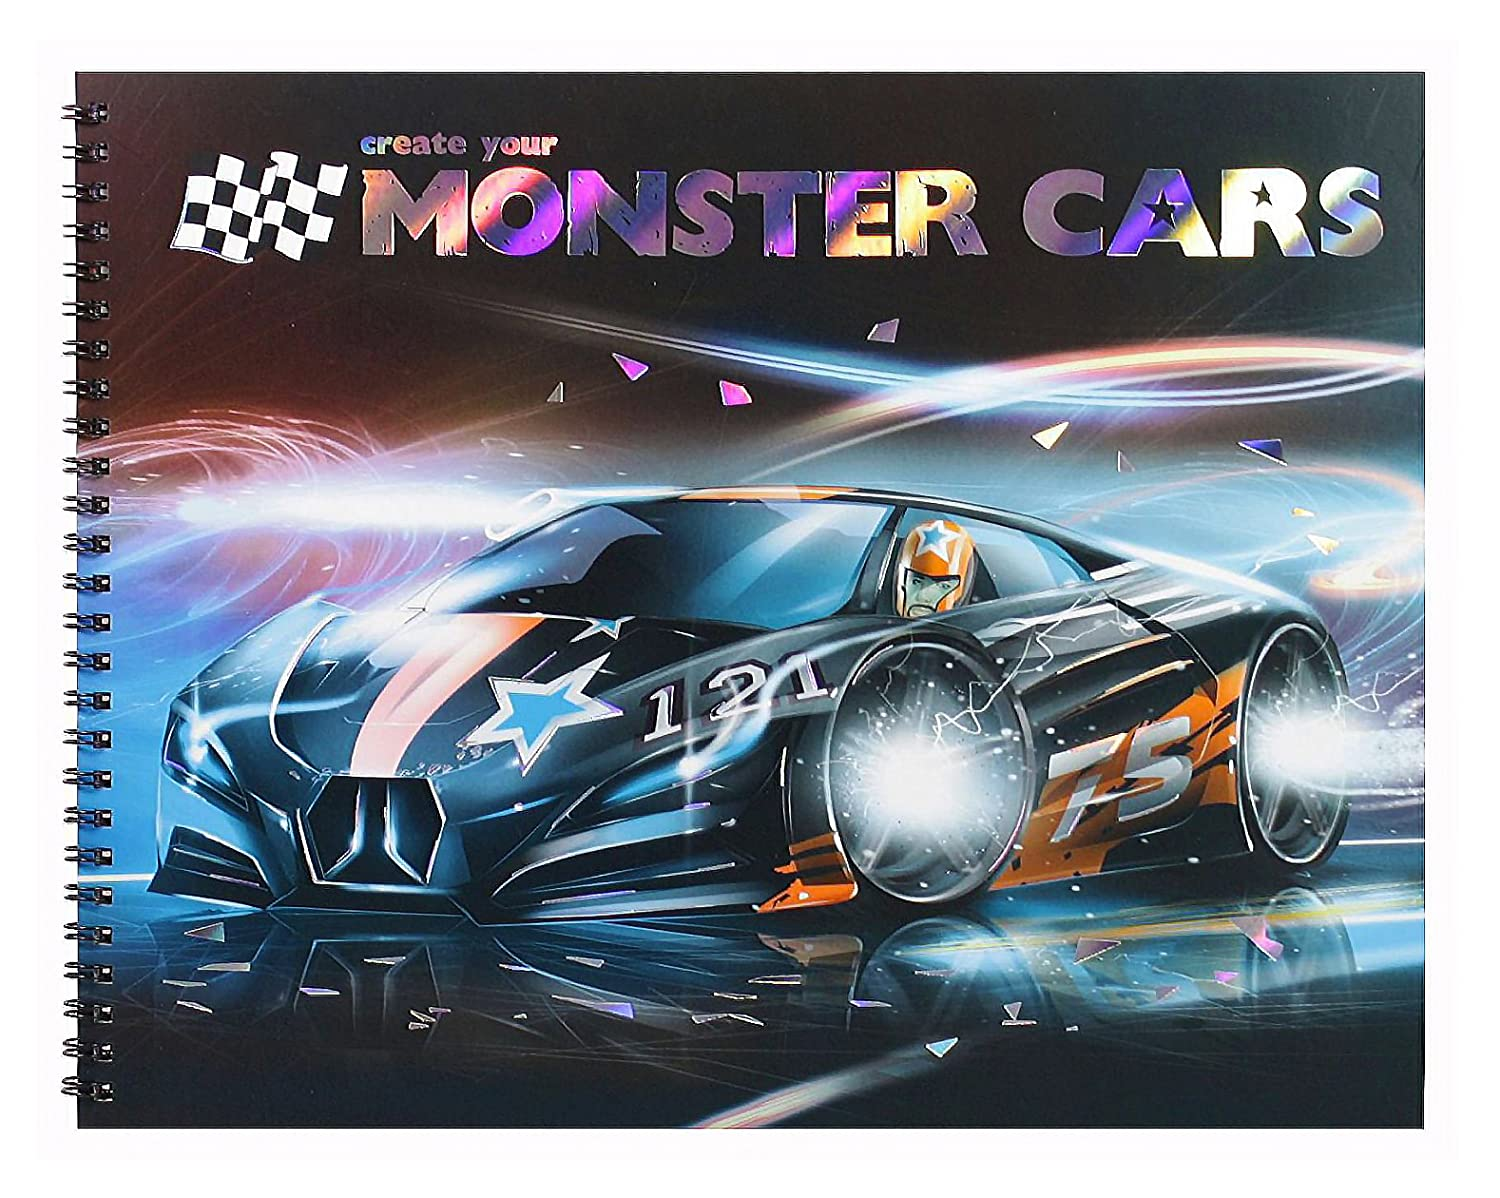 New Depesche Create Your Monster Cars Colouring Book Amazon Co Uk